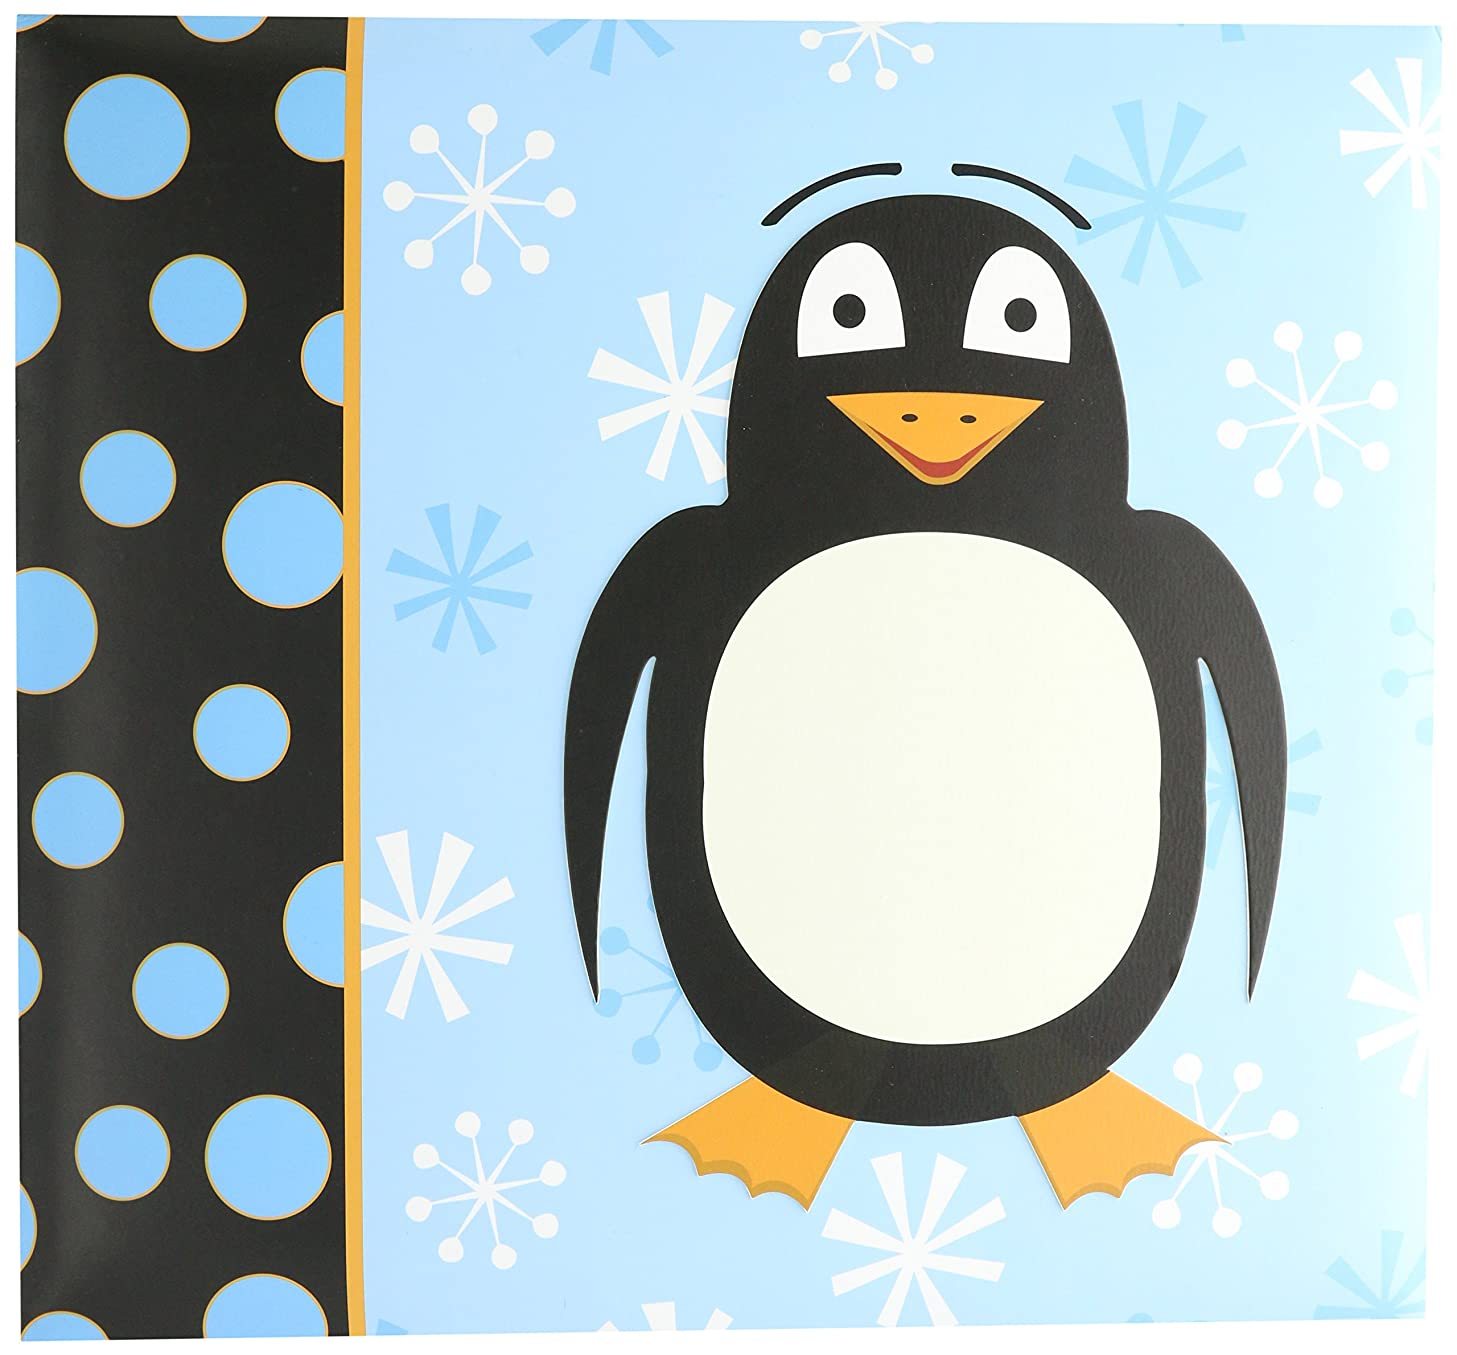 MCS MBI 13.5x12.5 Inch 3-D Raised Character Scrapbook Album with 12x12 Inch Pages, Penguin (848139)